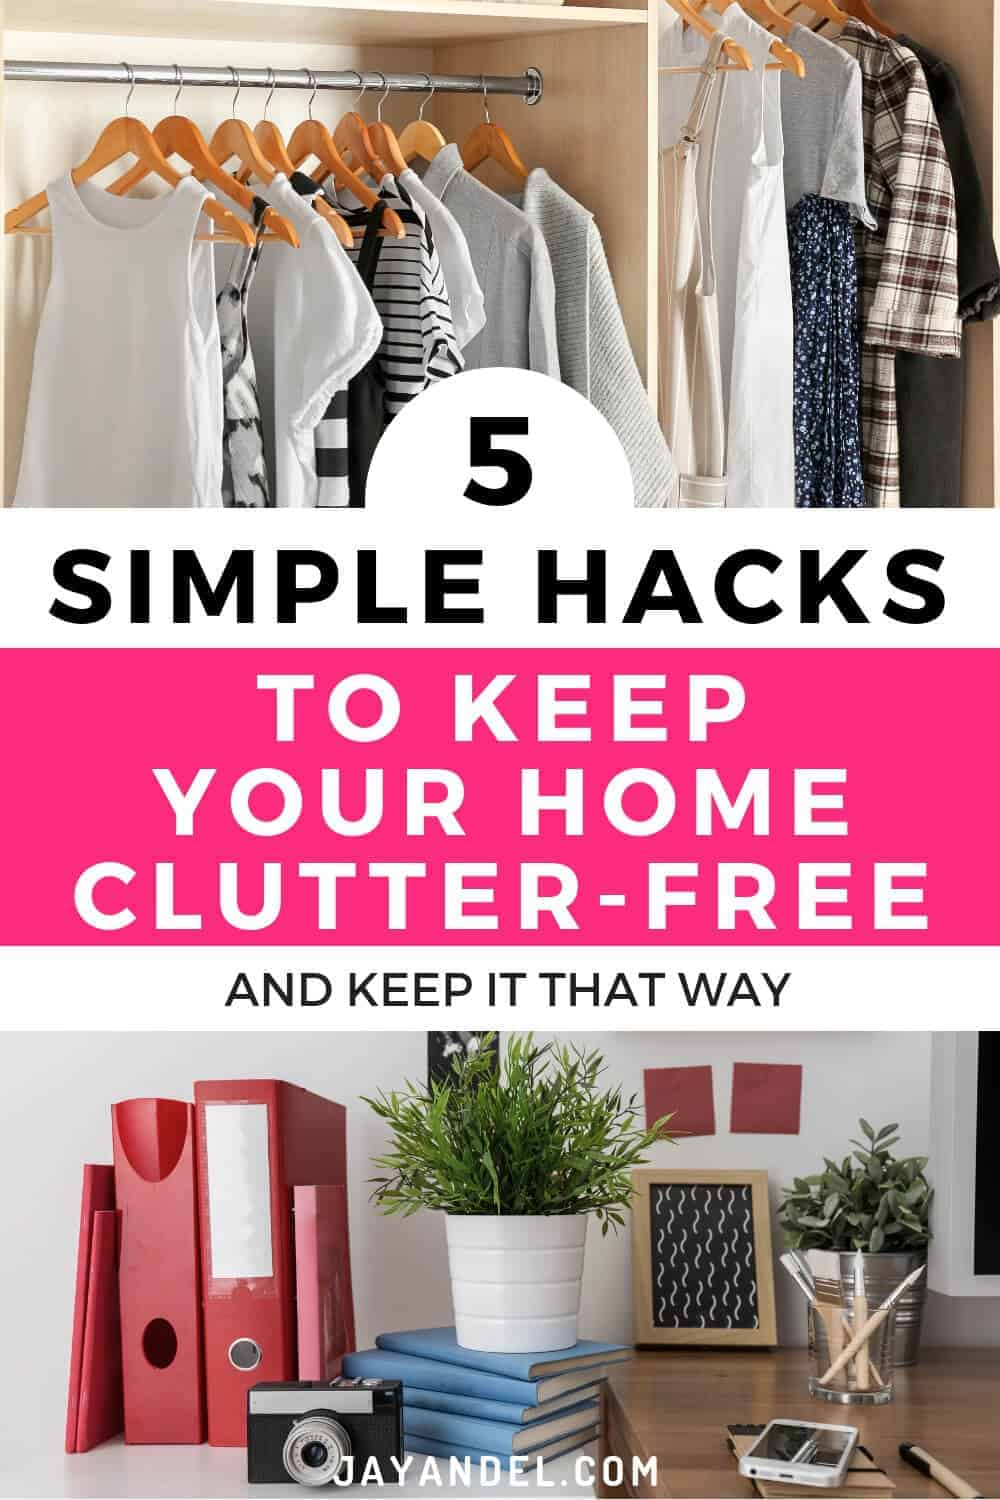 Keep Home Simple New Entry Light: 5 Simple Hacks To Keep Your Home Clutter-Free